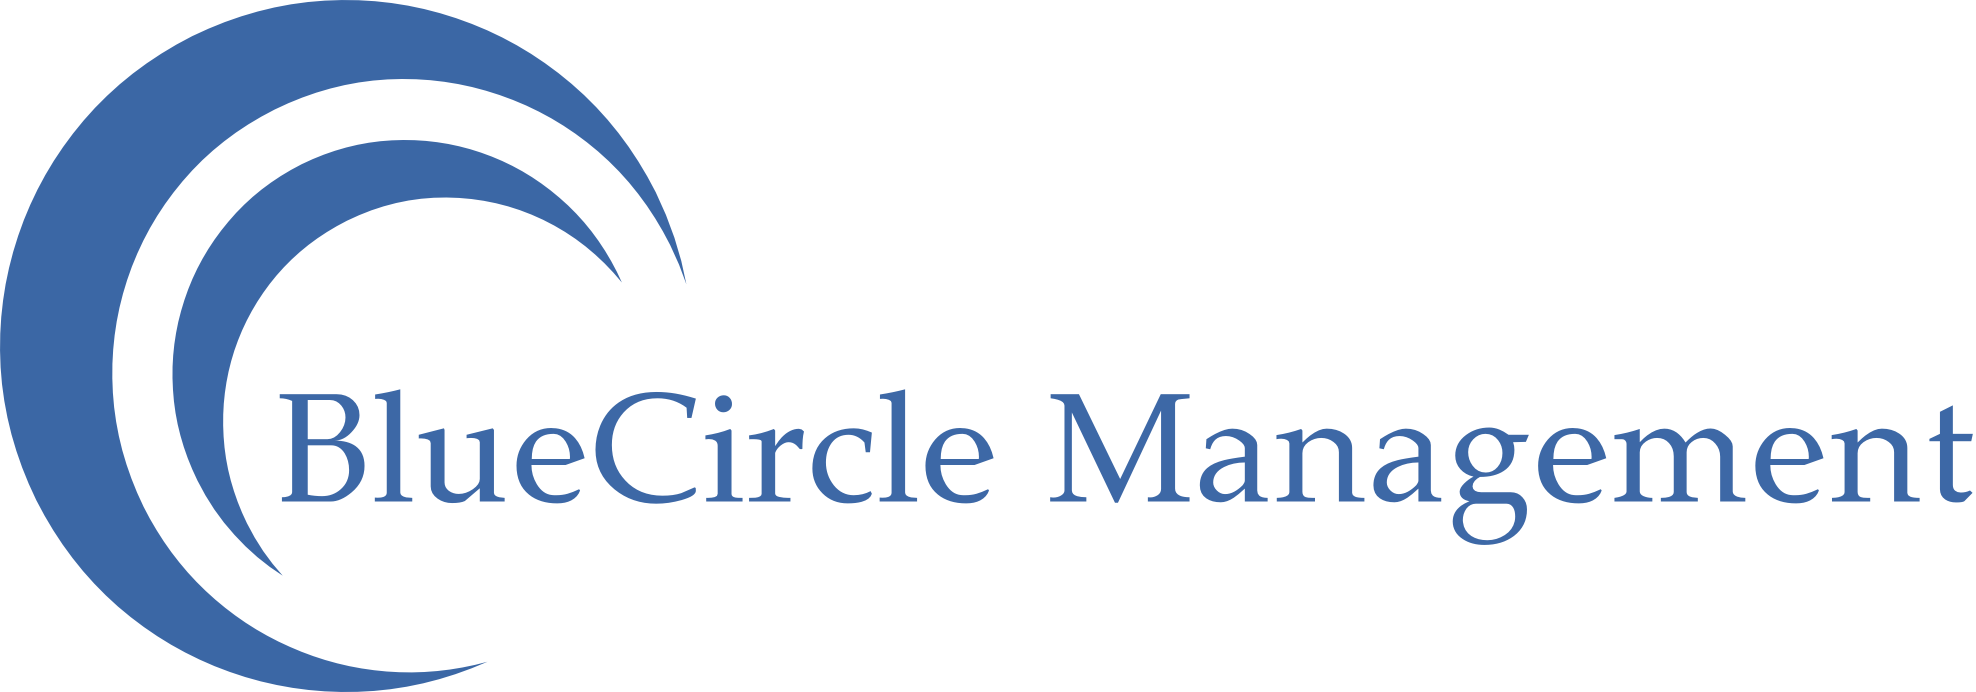 BlueCircle Management